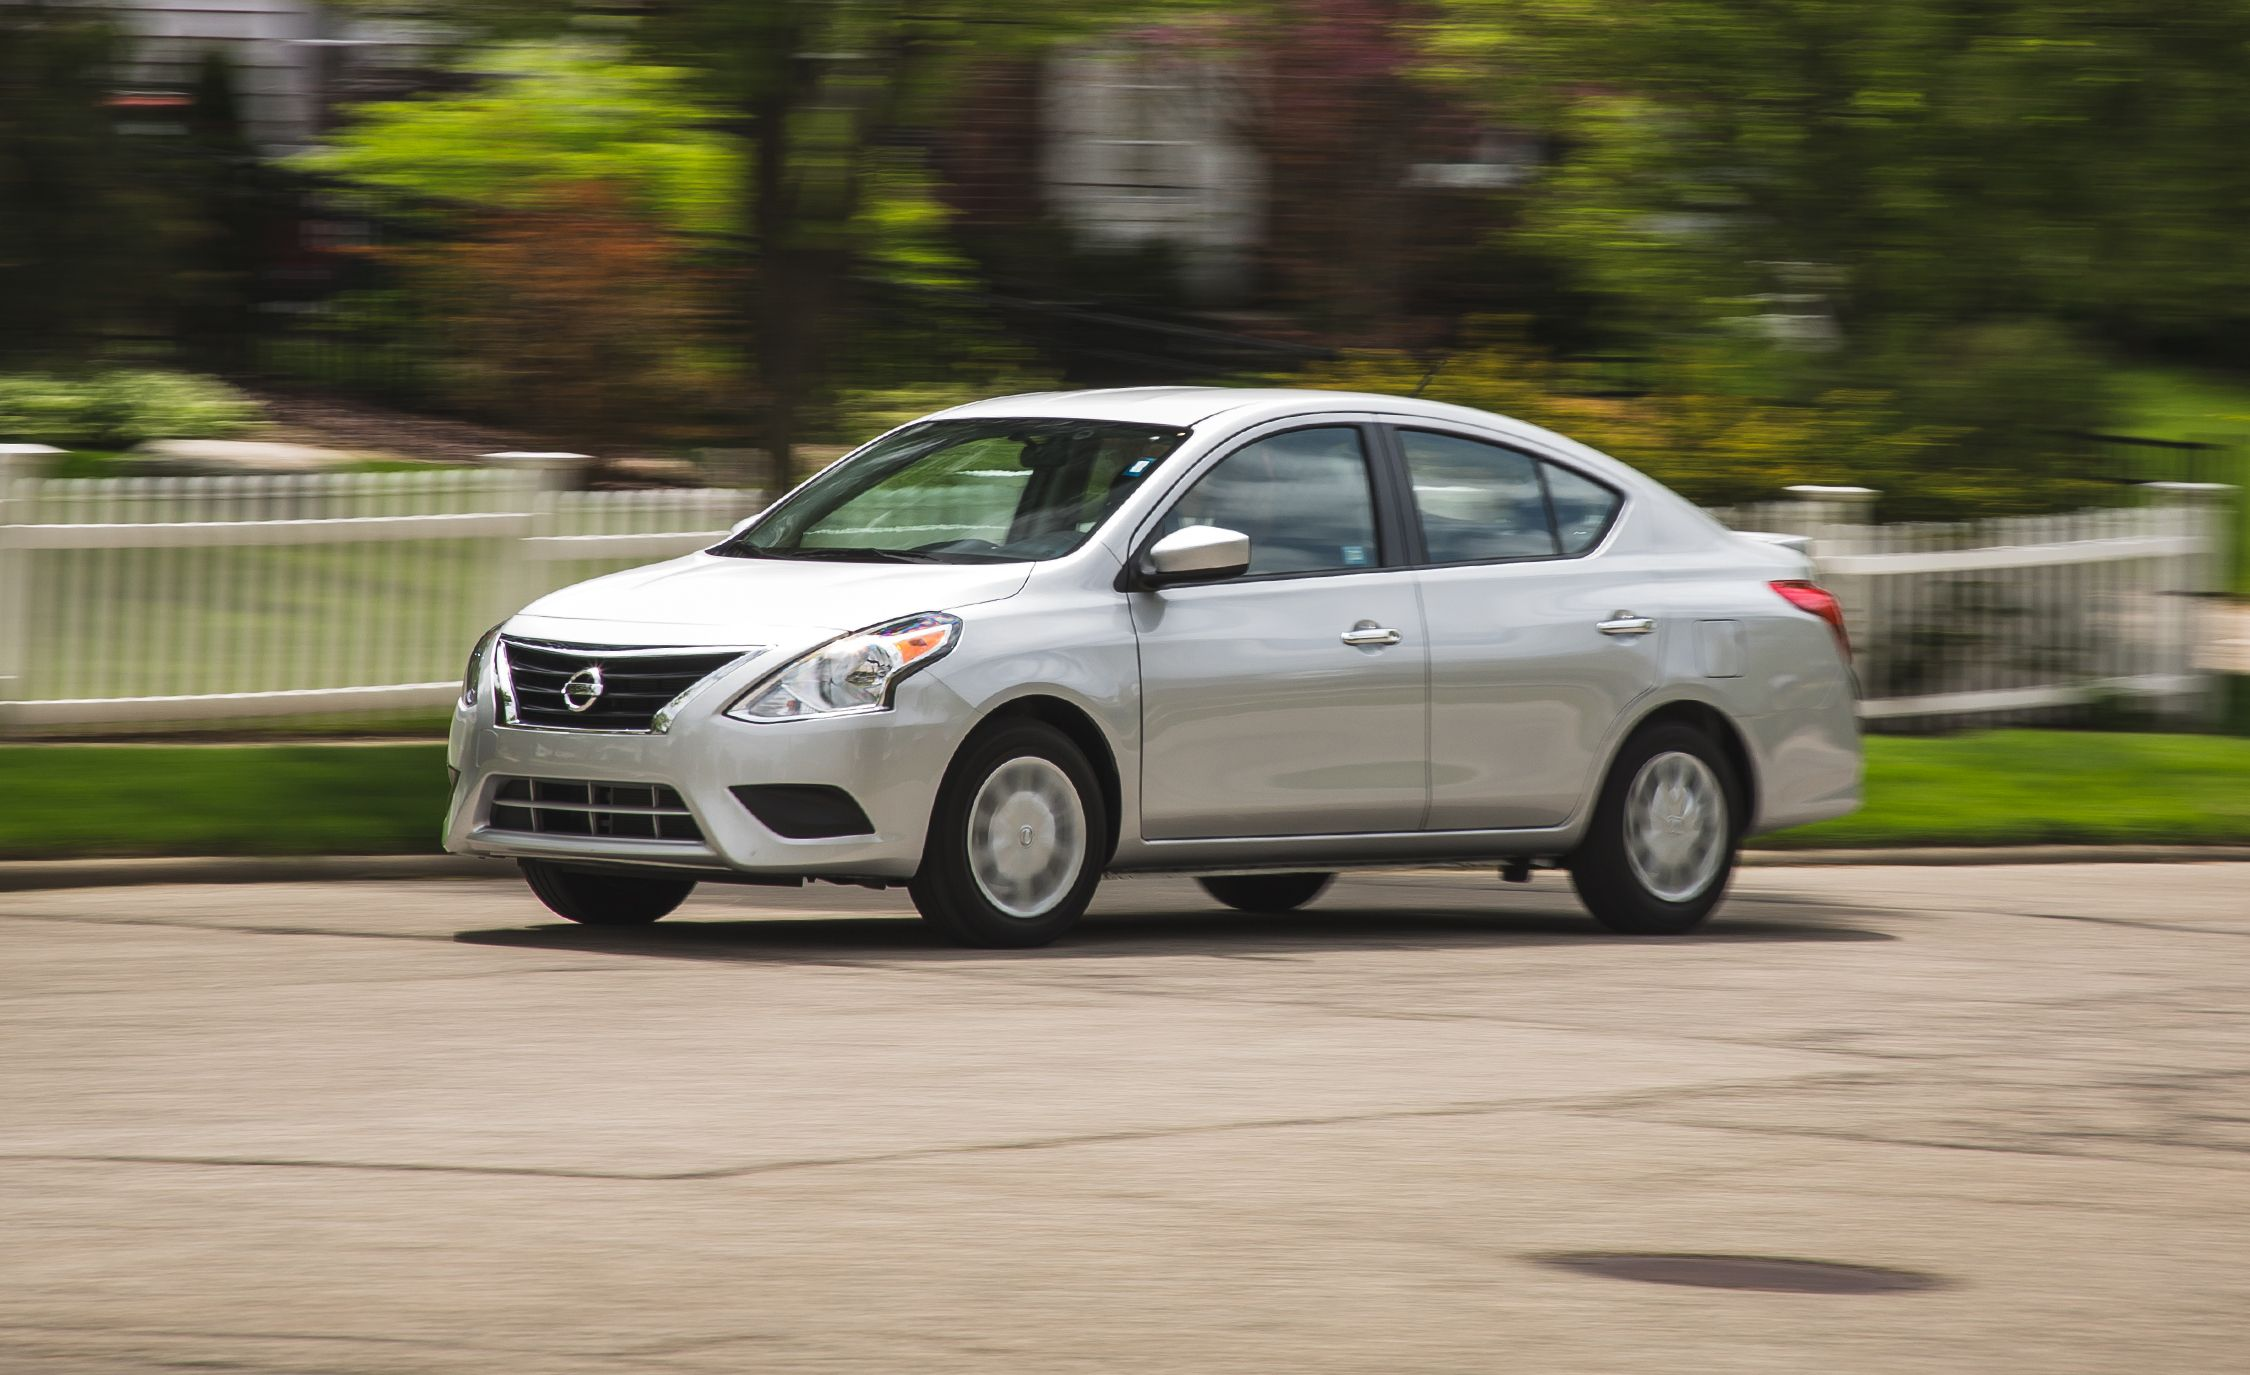 2017 Nissan Versa Sedan Automatic Test   Review   Car and Driver